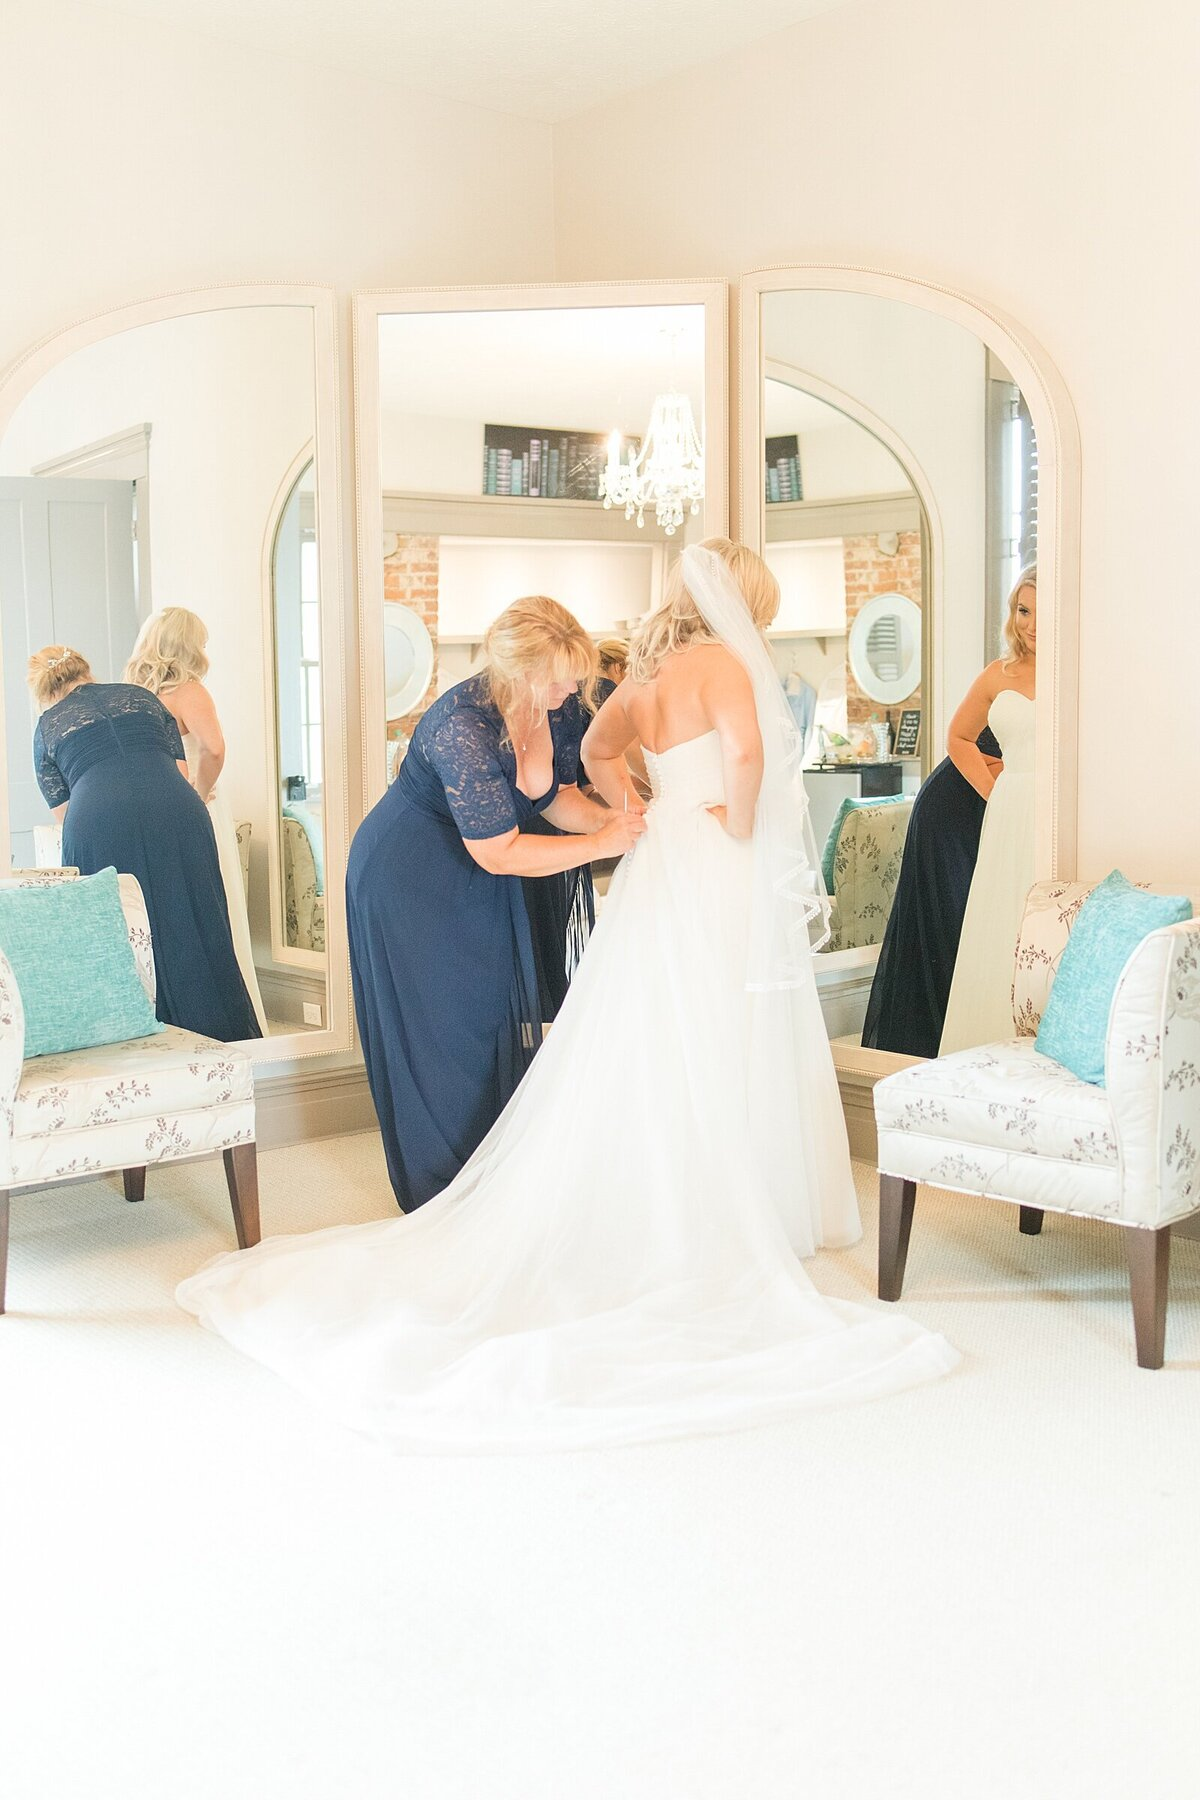 Kara Webster Photography | Mac & Maggie | Bradshaw-Duncan House Louisville, KY Wedding Photographer_0010